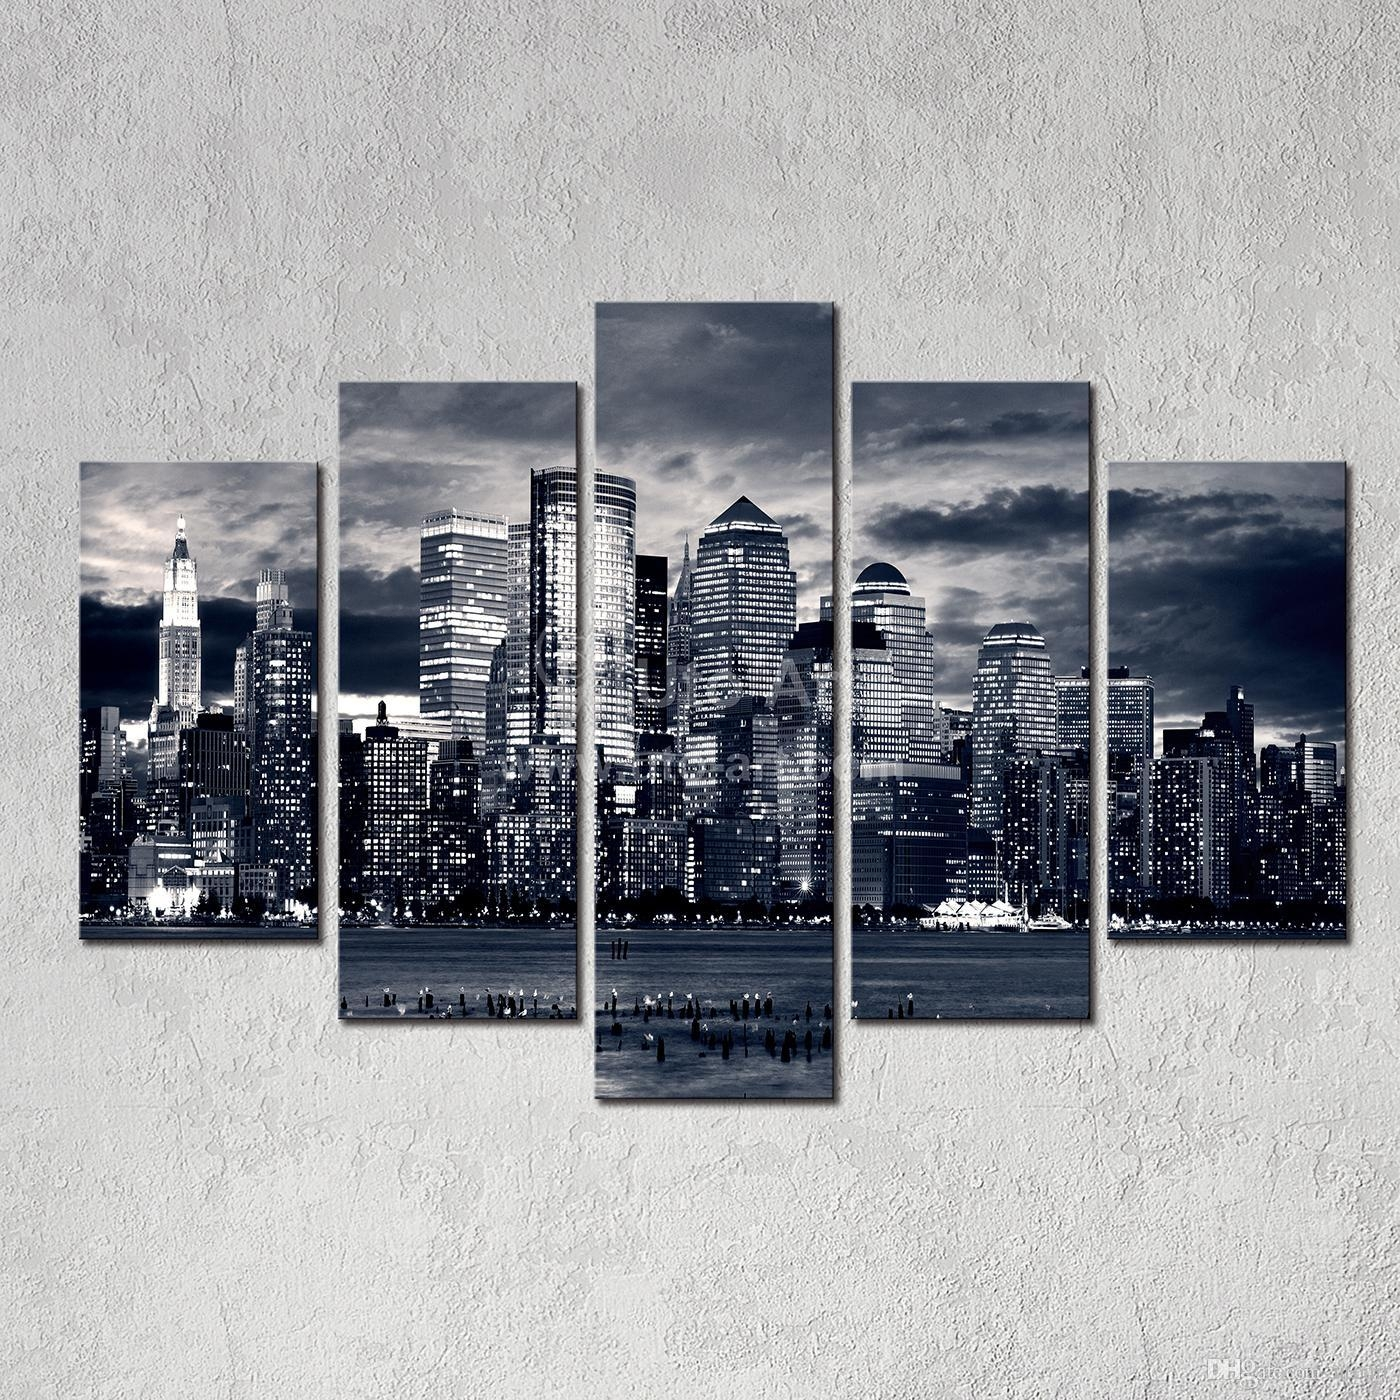 2017 Modern Home Decor New York City Painting Black White Digital Inside New York Skyline Canvas Black And White Wall Art (View 2 of 20)